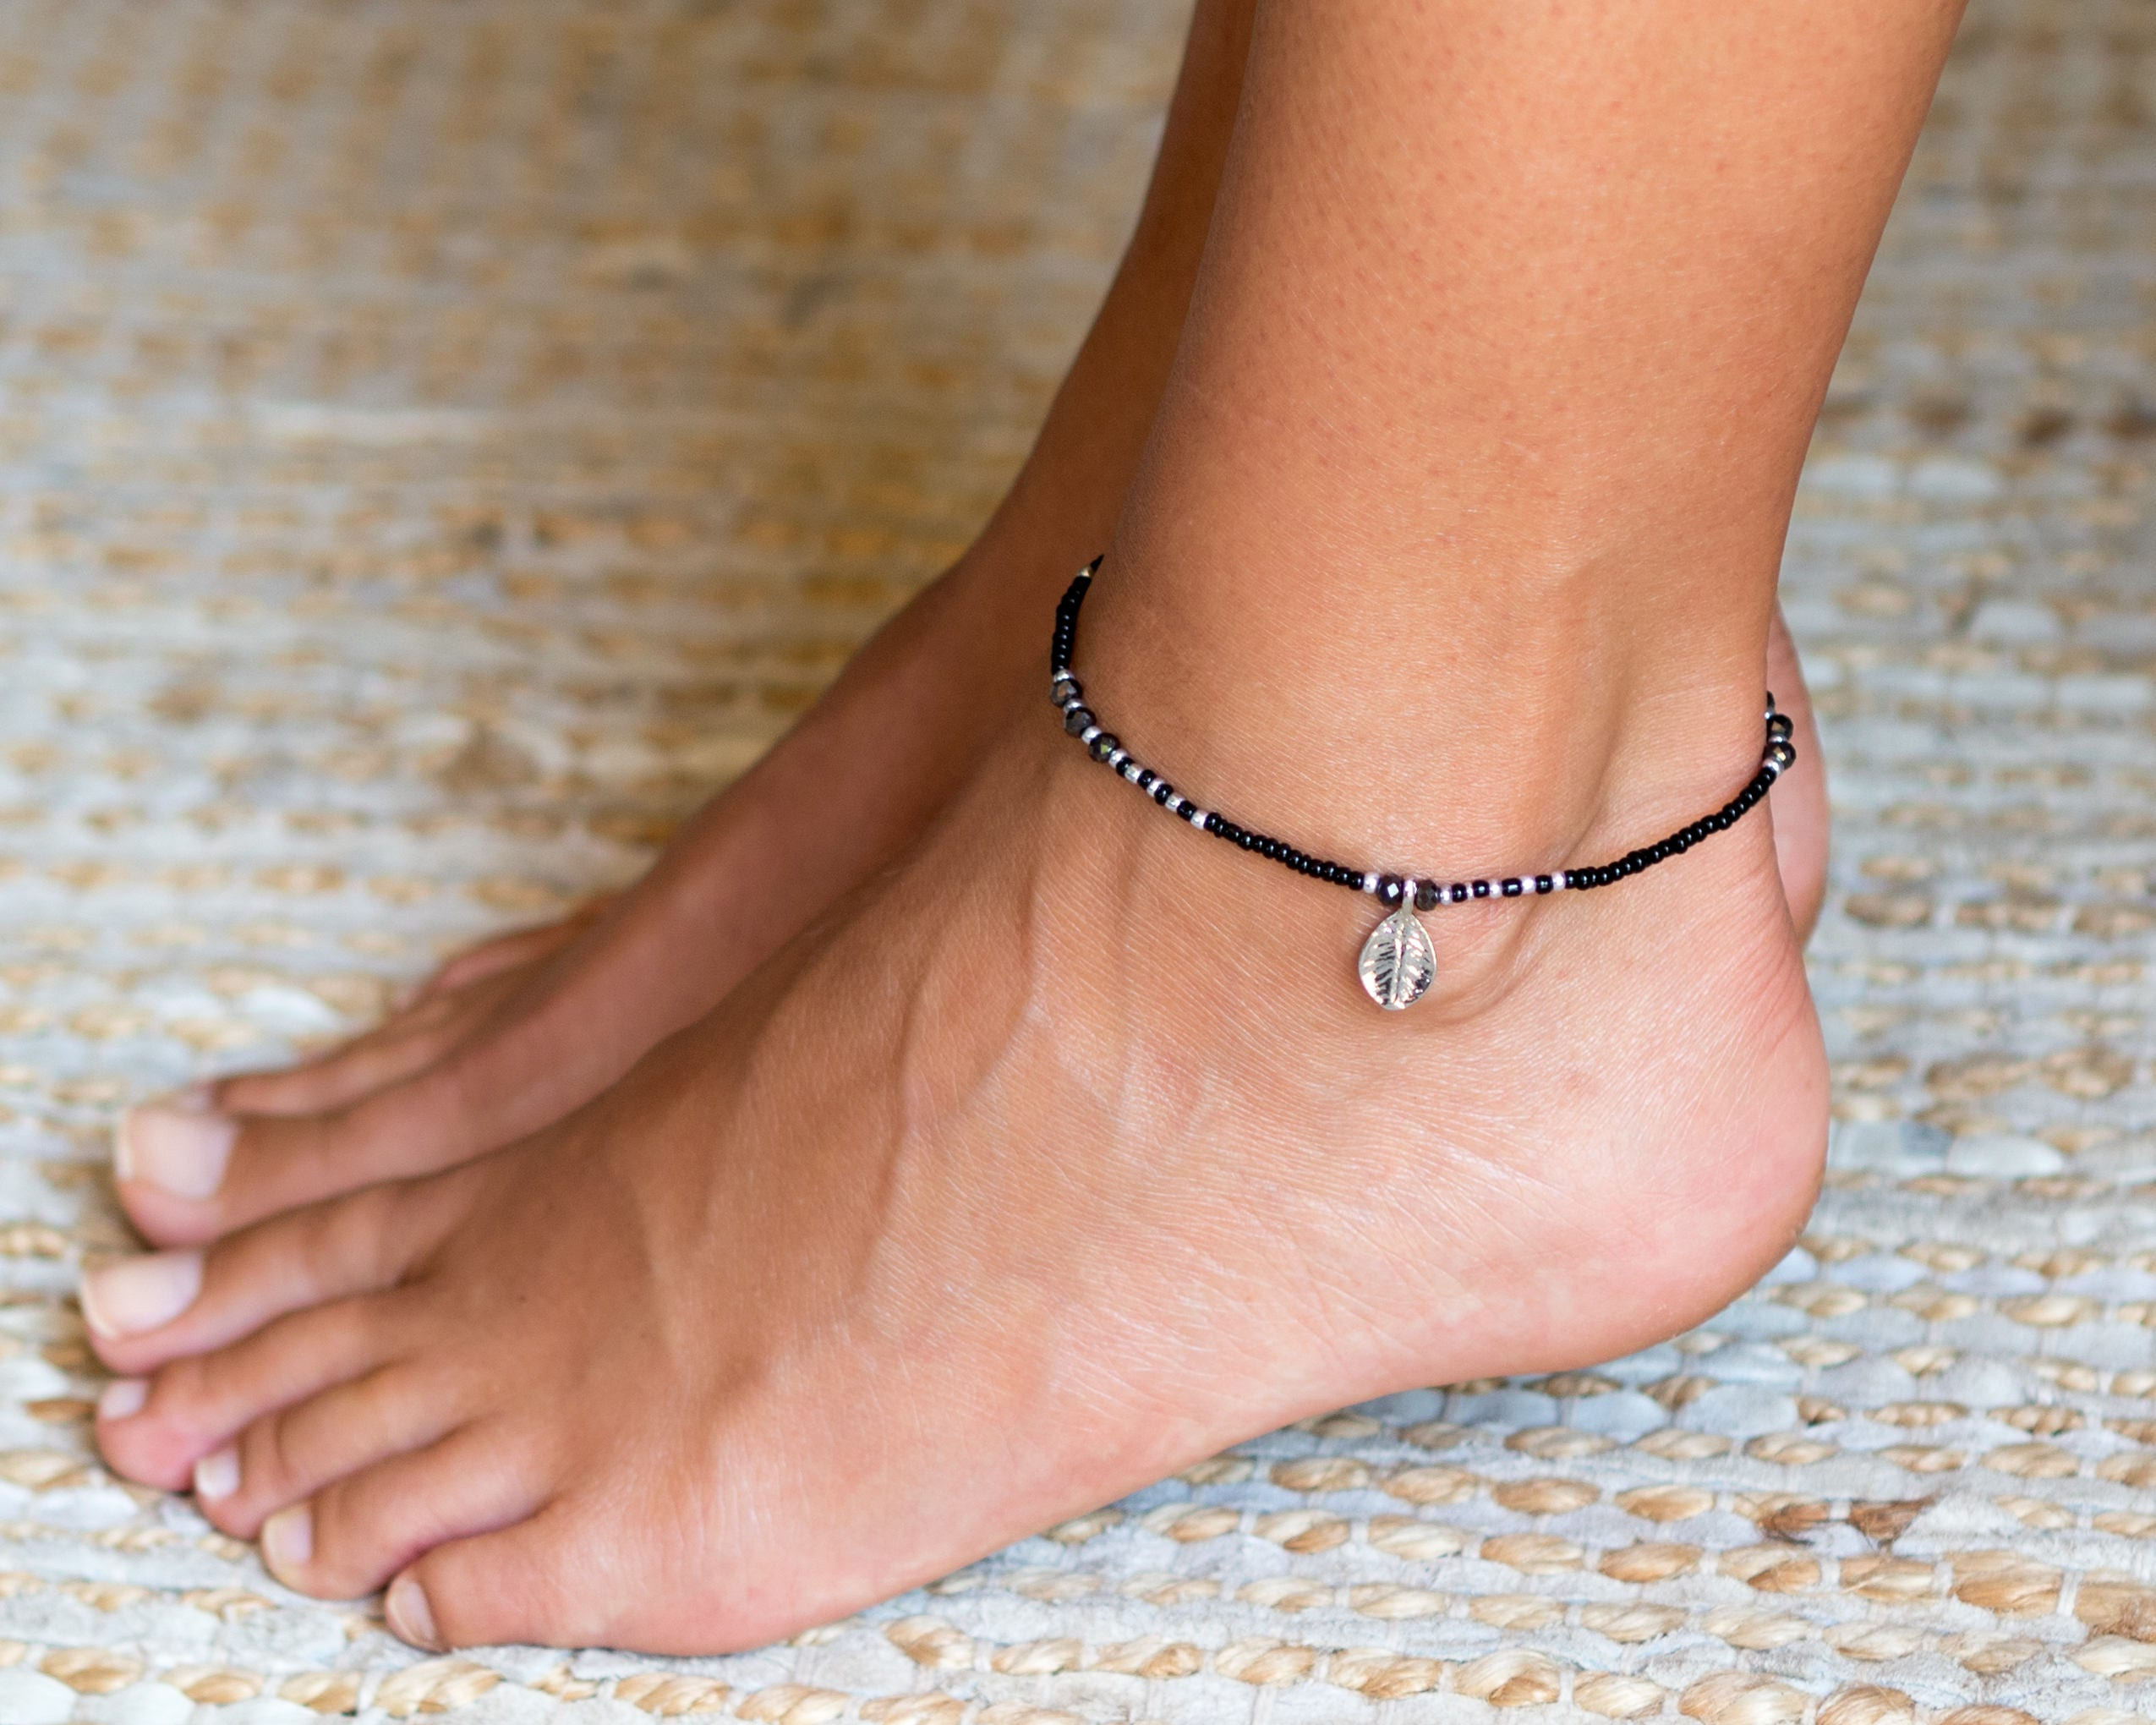 p beaded novica sweet handmade anklet bracelets tribe brass ankle charm beach hill